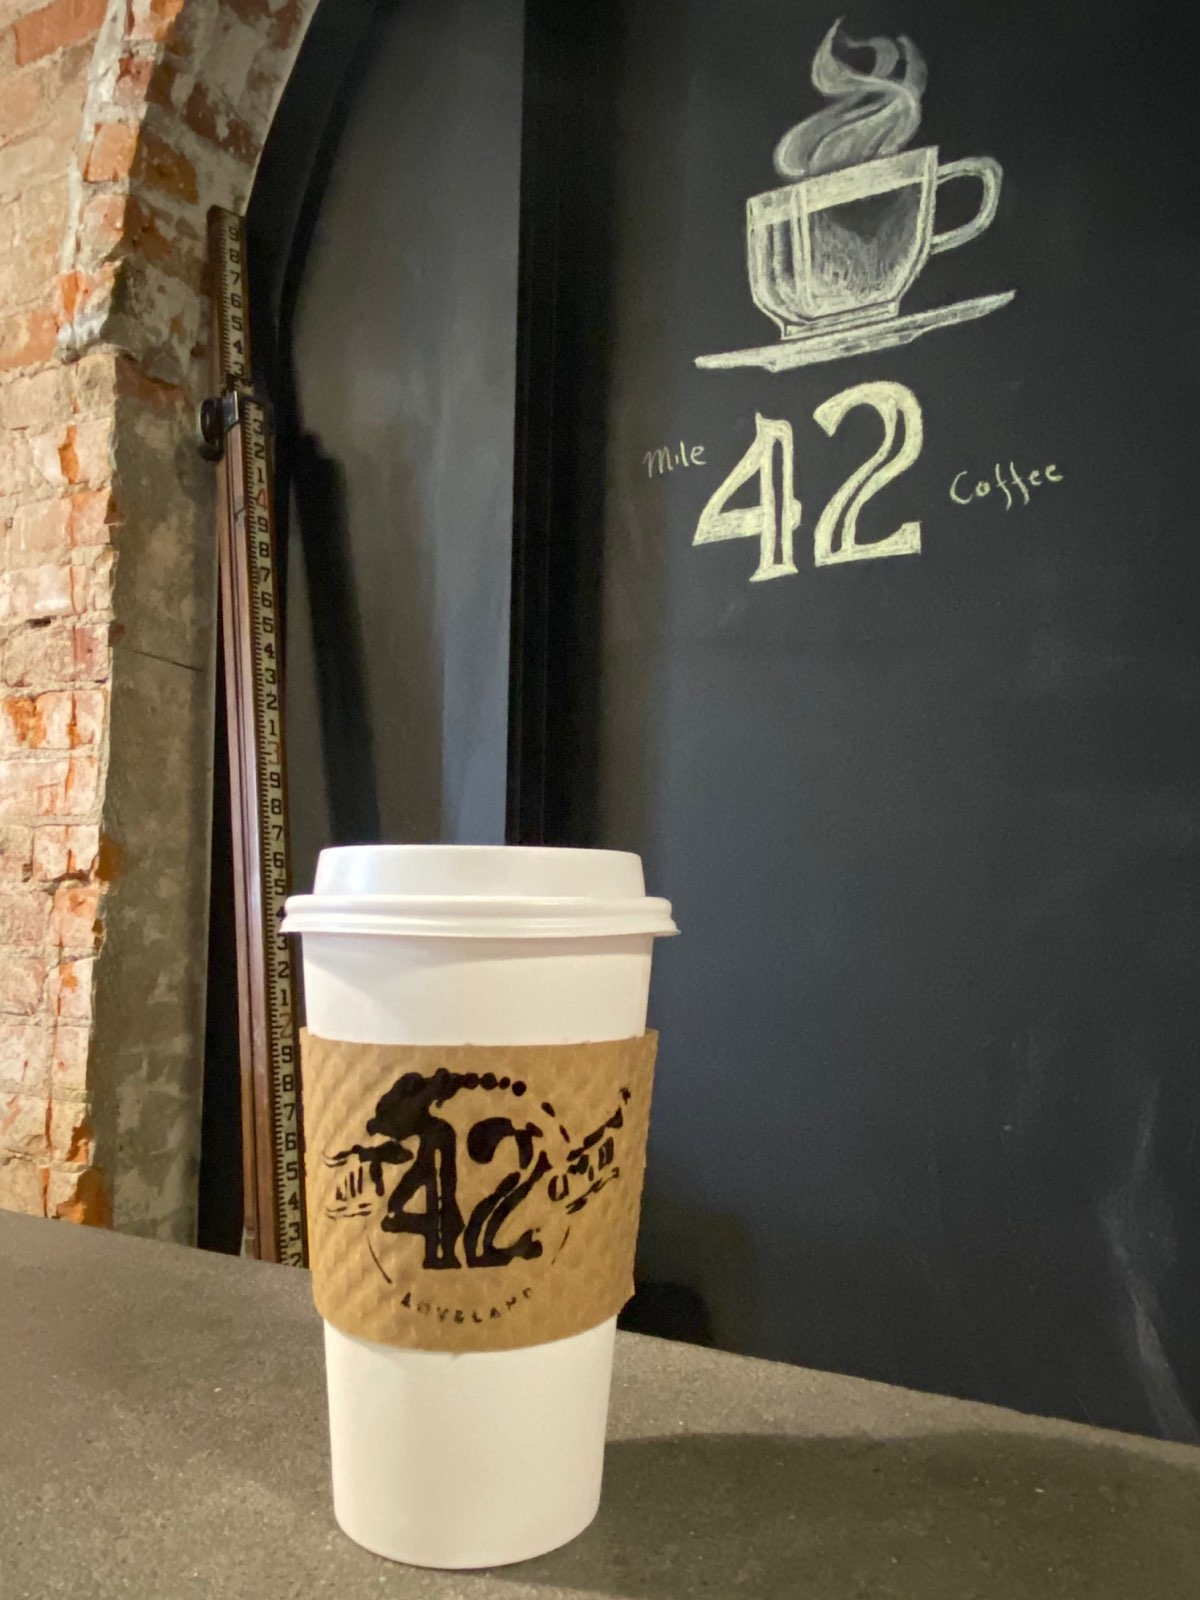 Mile 42 Coffee in Loveland, Ohio